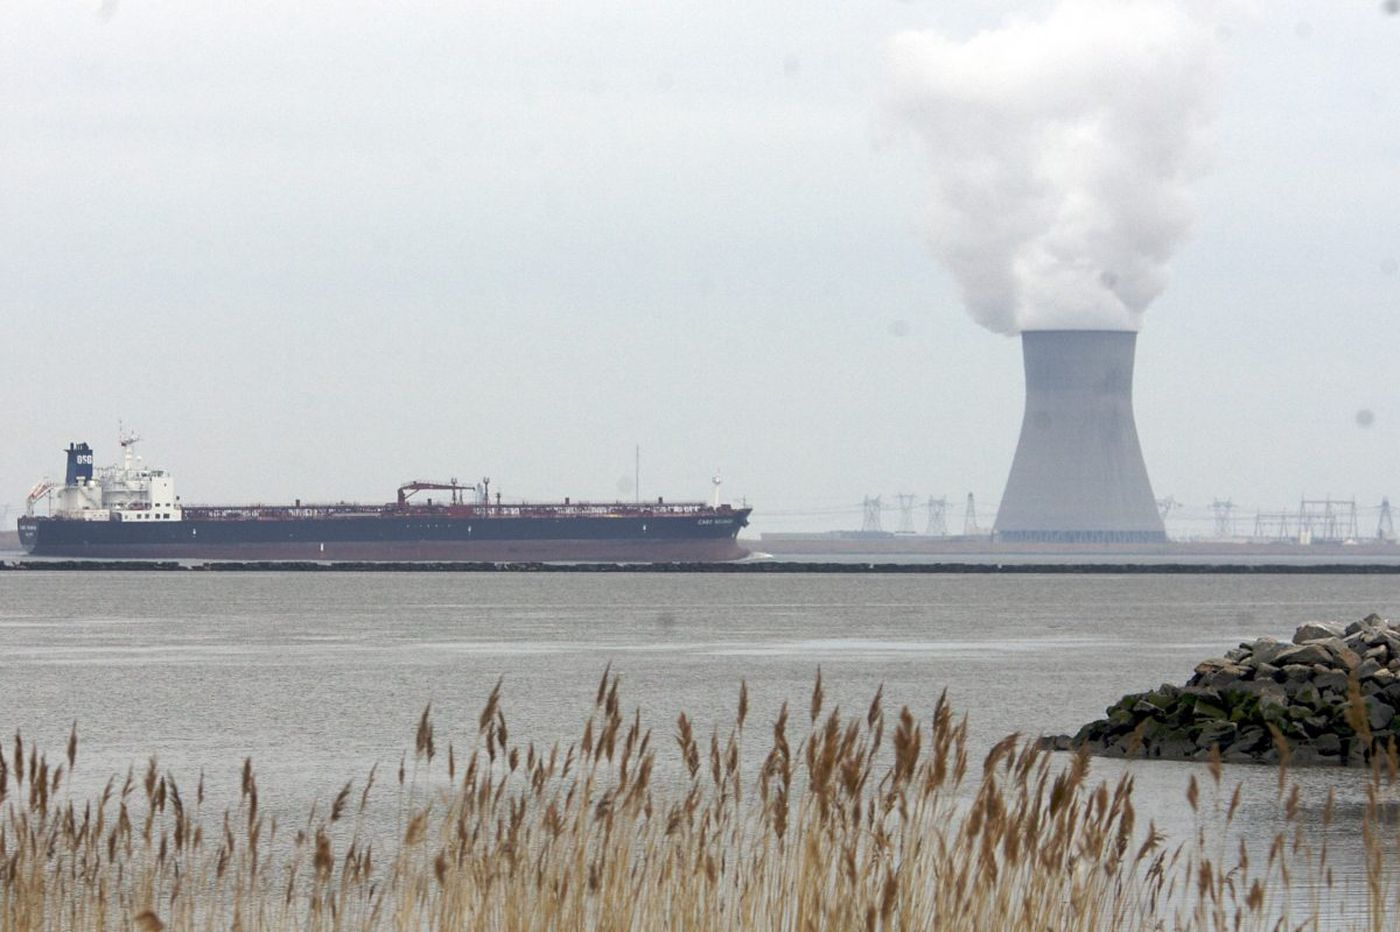 New Jersey approves $300 million in nuclear subsidies